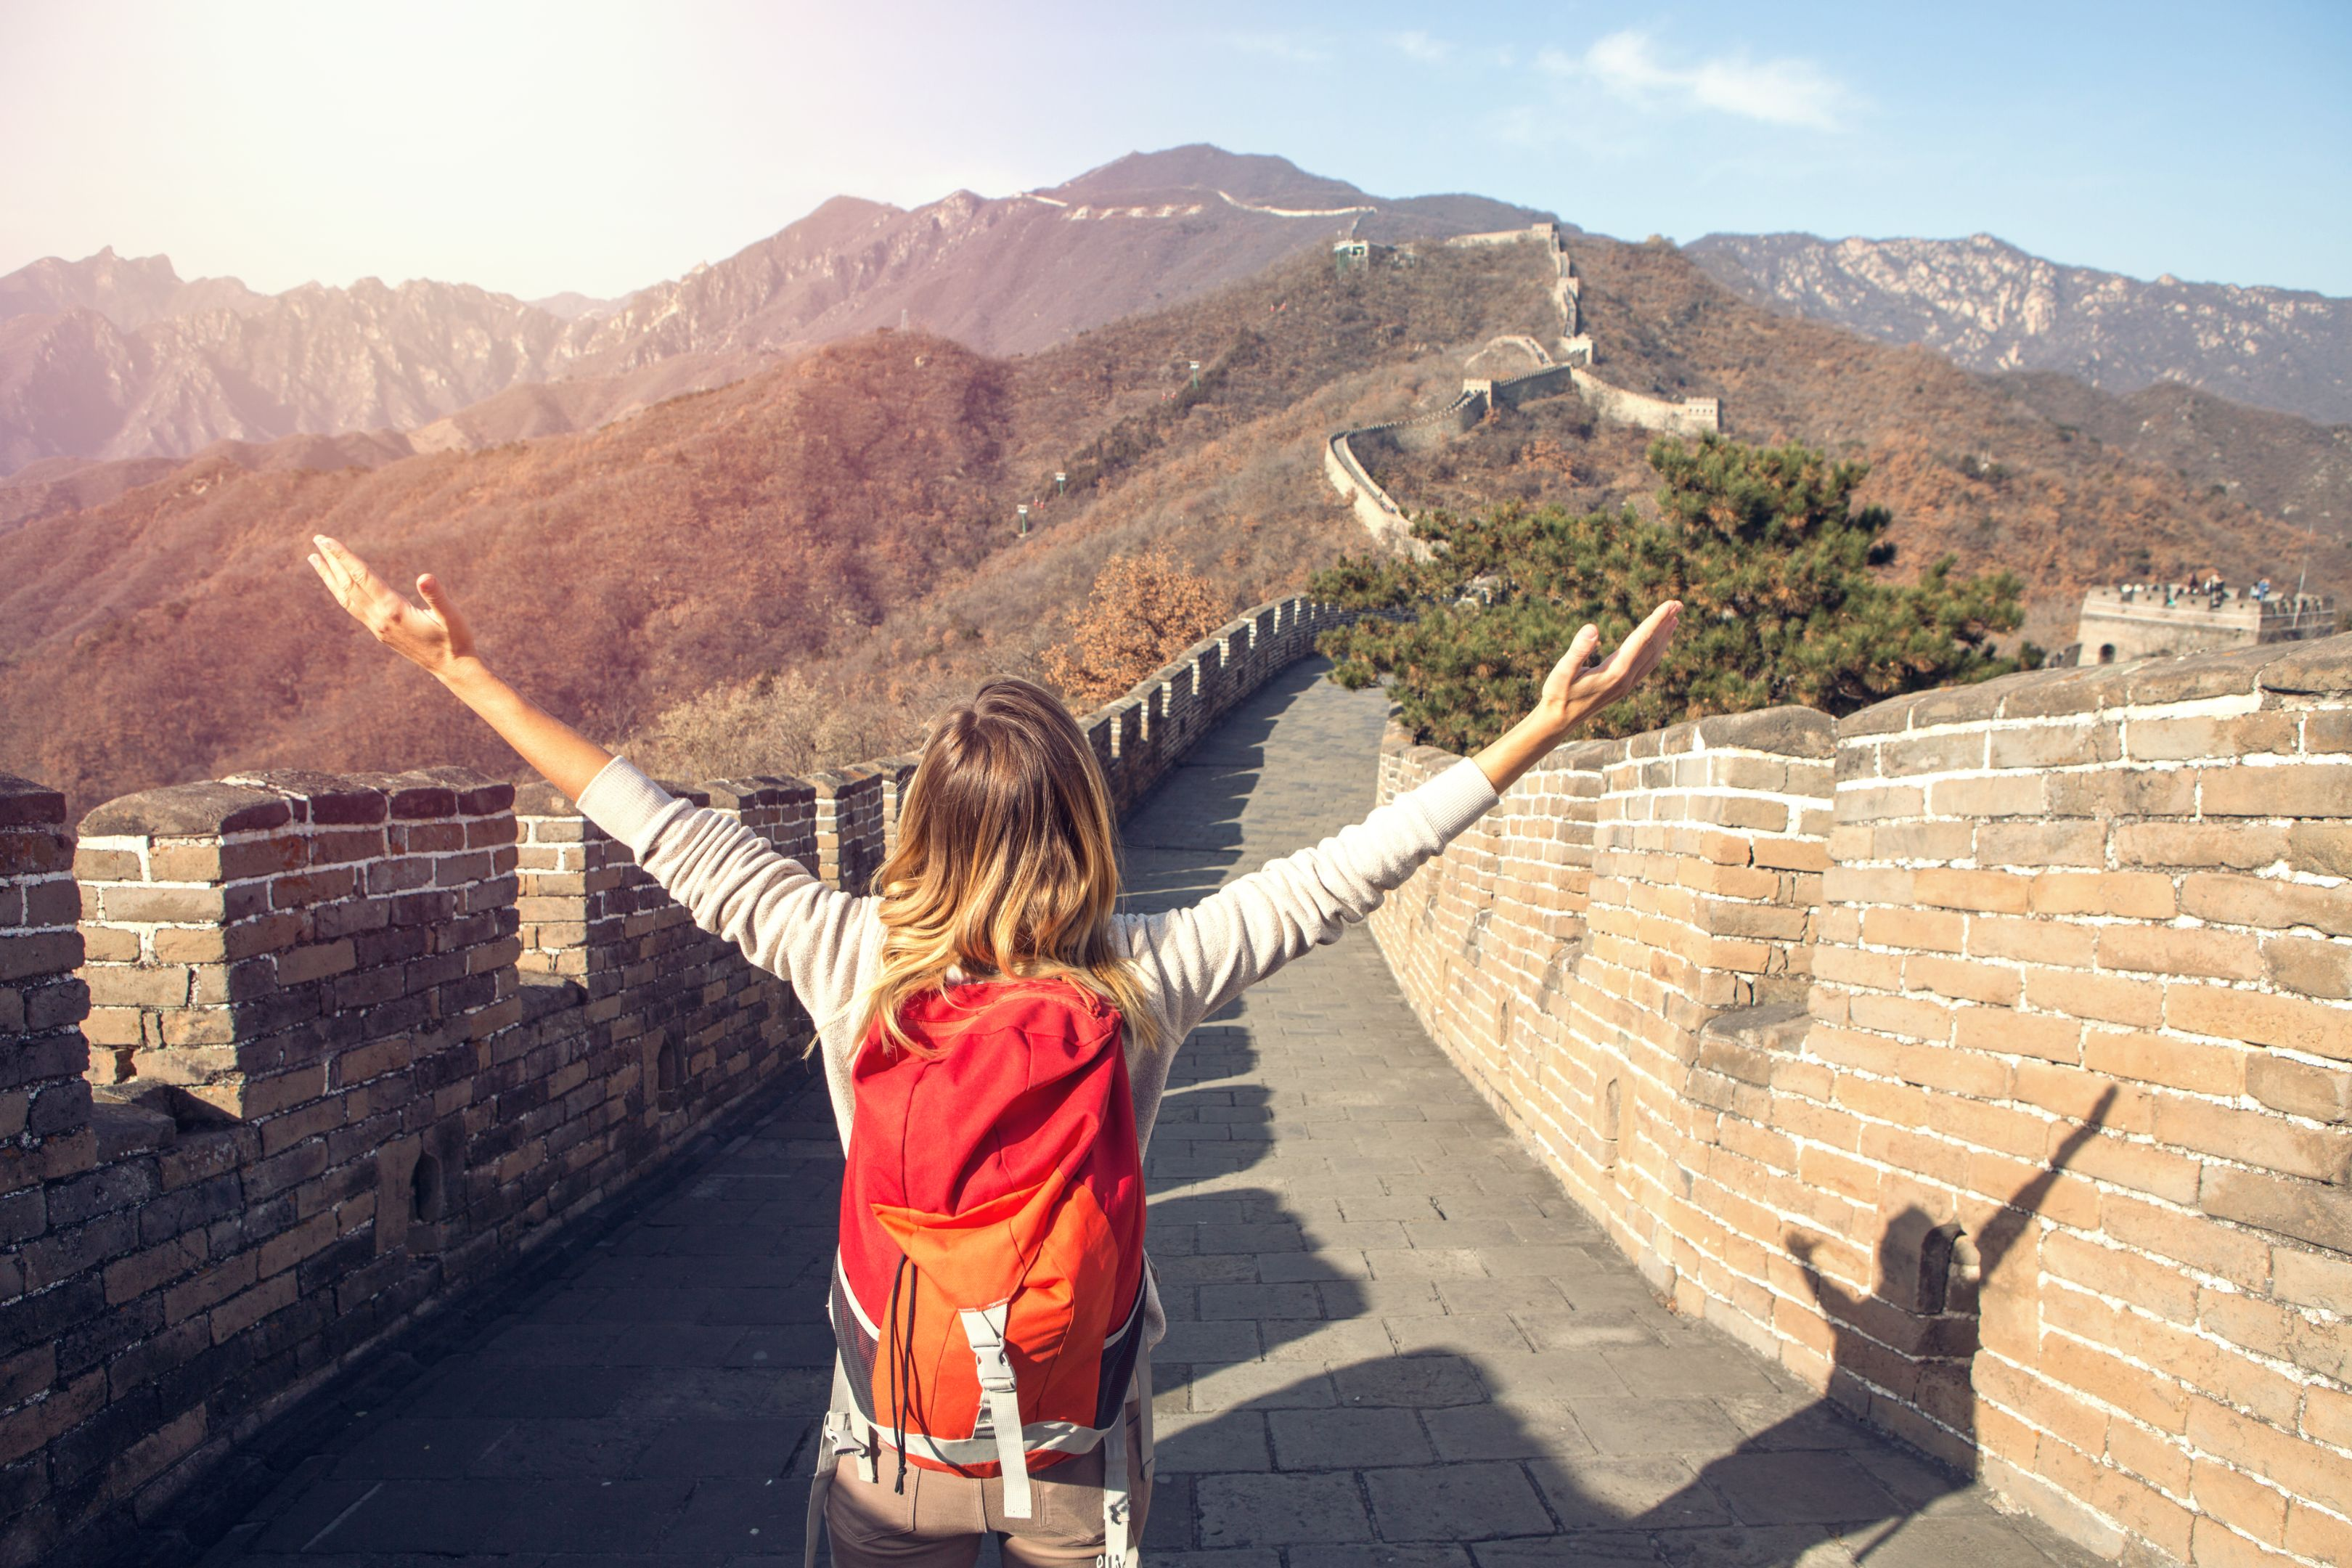 Young woman embracing nature-Great Wall of China